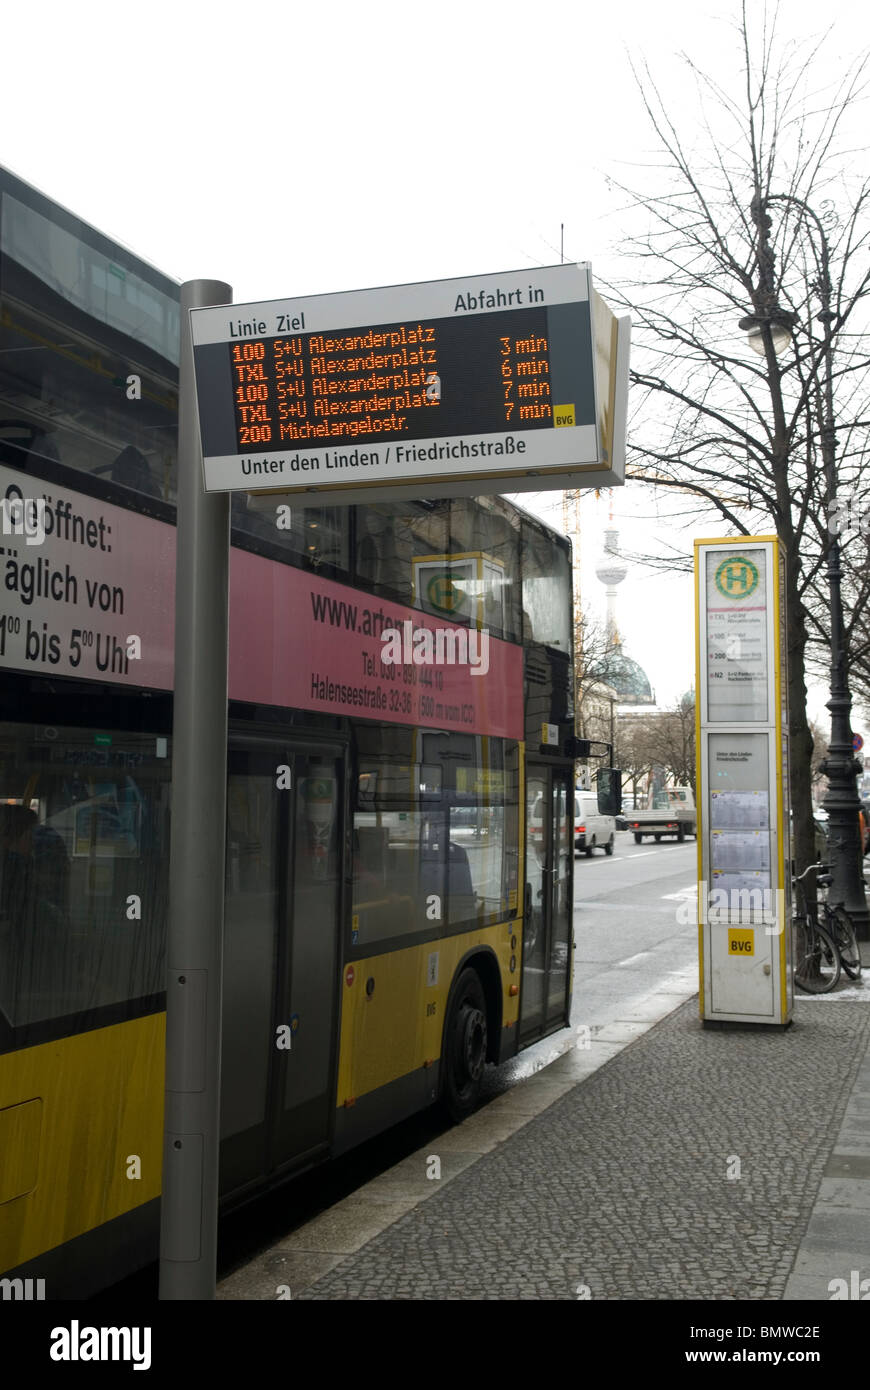 digital timetable sign at bus stop berlin germany stock photo royalty free image 30061766 alamy. Black Bedroom Furniture Sets. Home Design Ideas